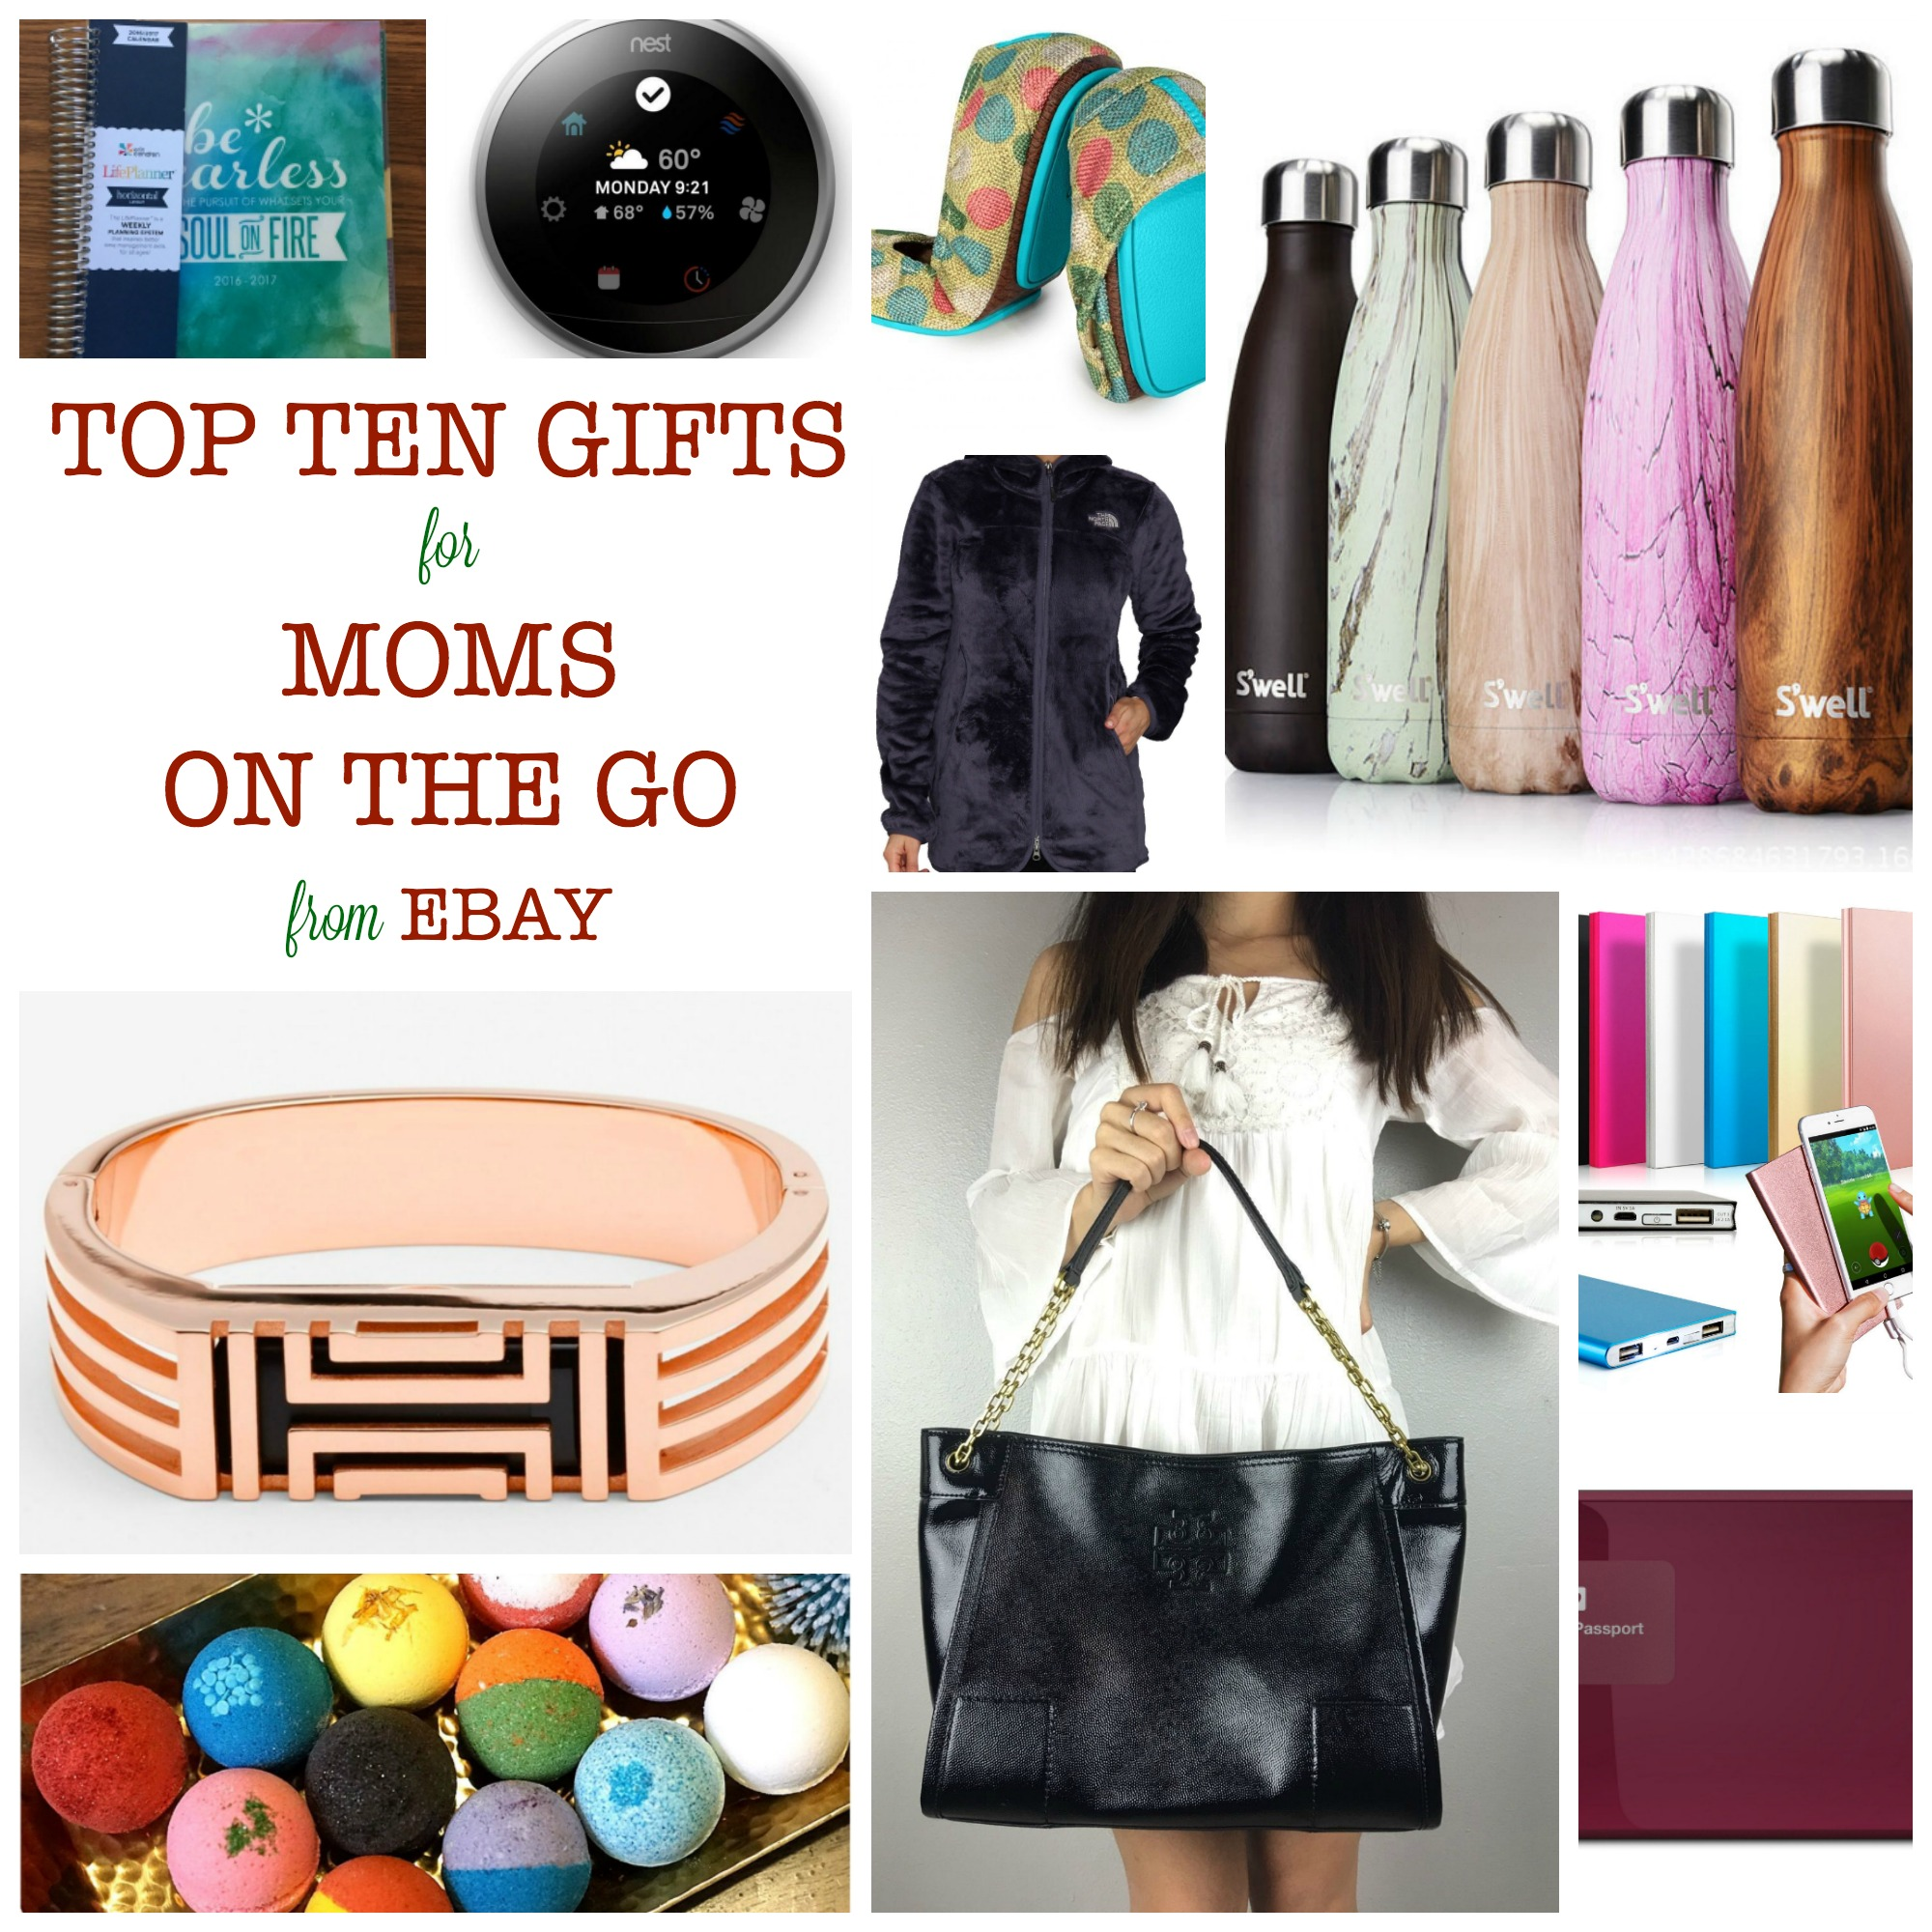 top-ten-gifts-for-moms-on-the-go